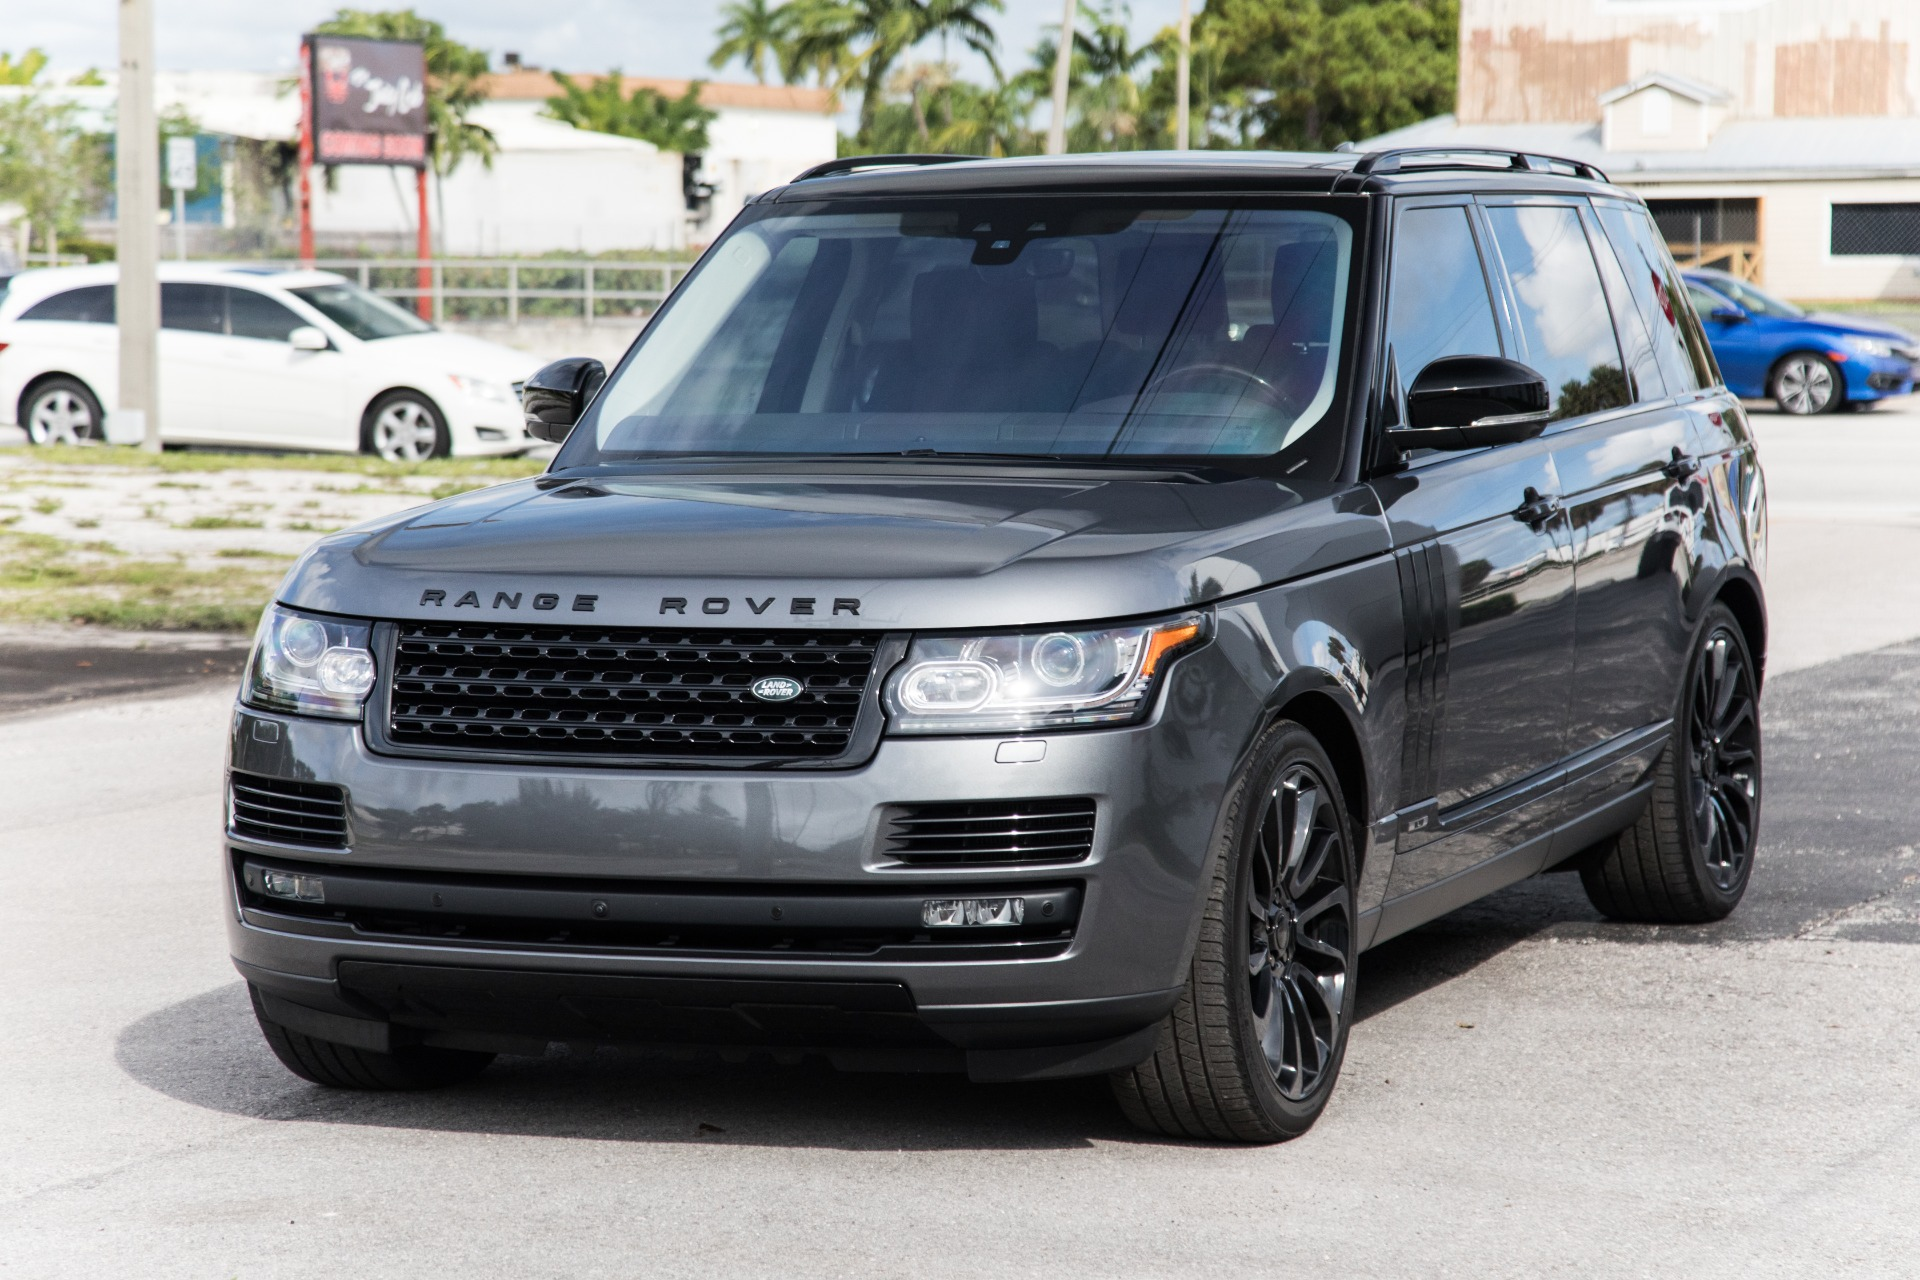 Used-2017-Land-Rover-Range-Rover-Supercharged-LWB